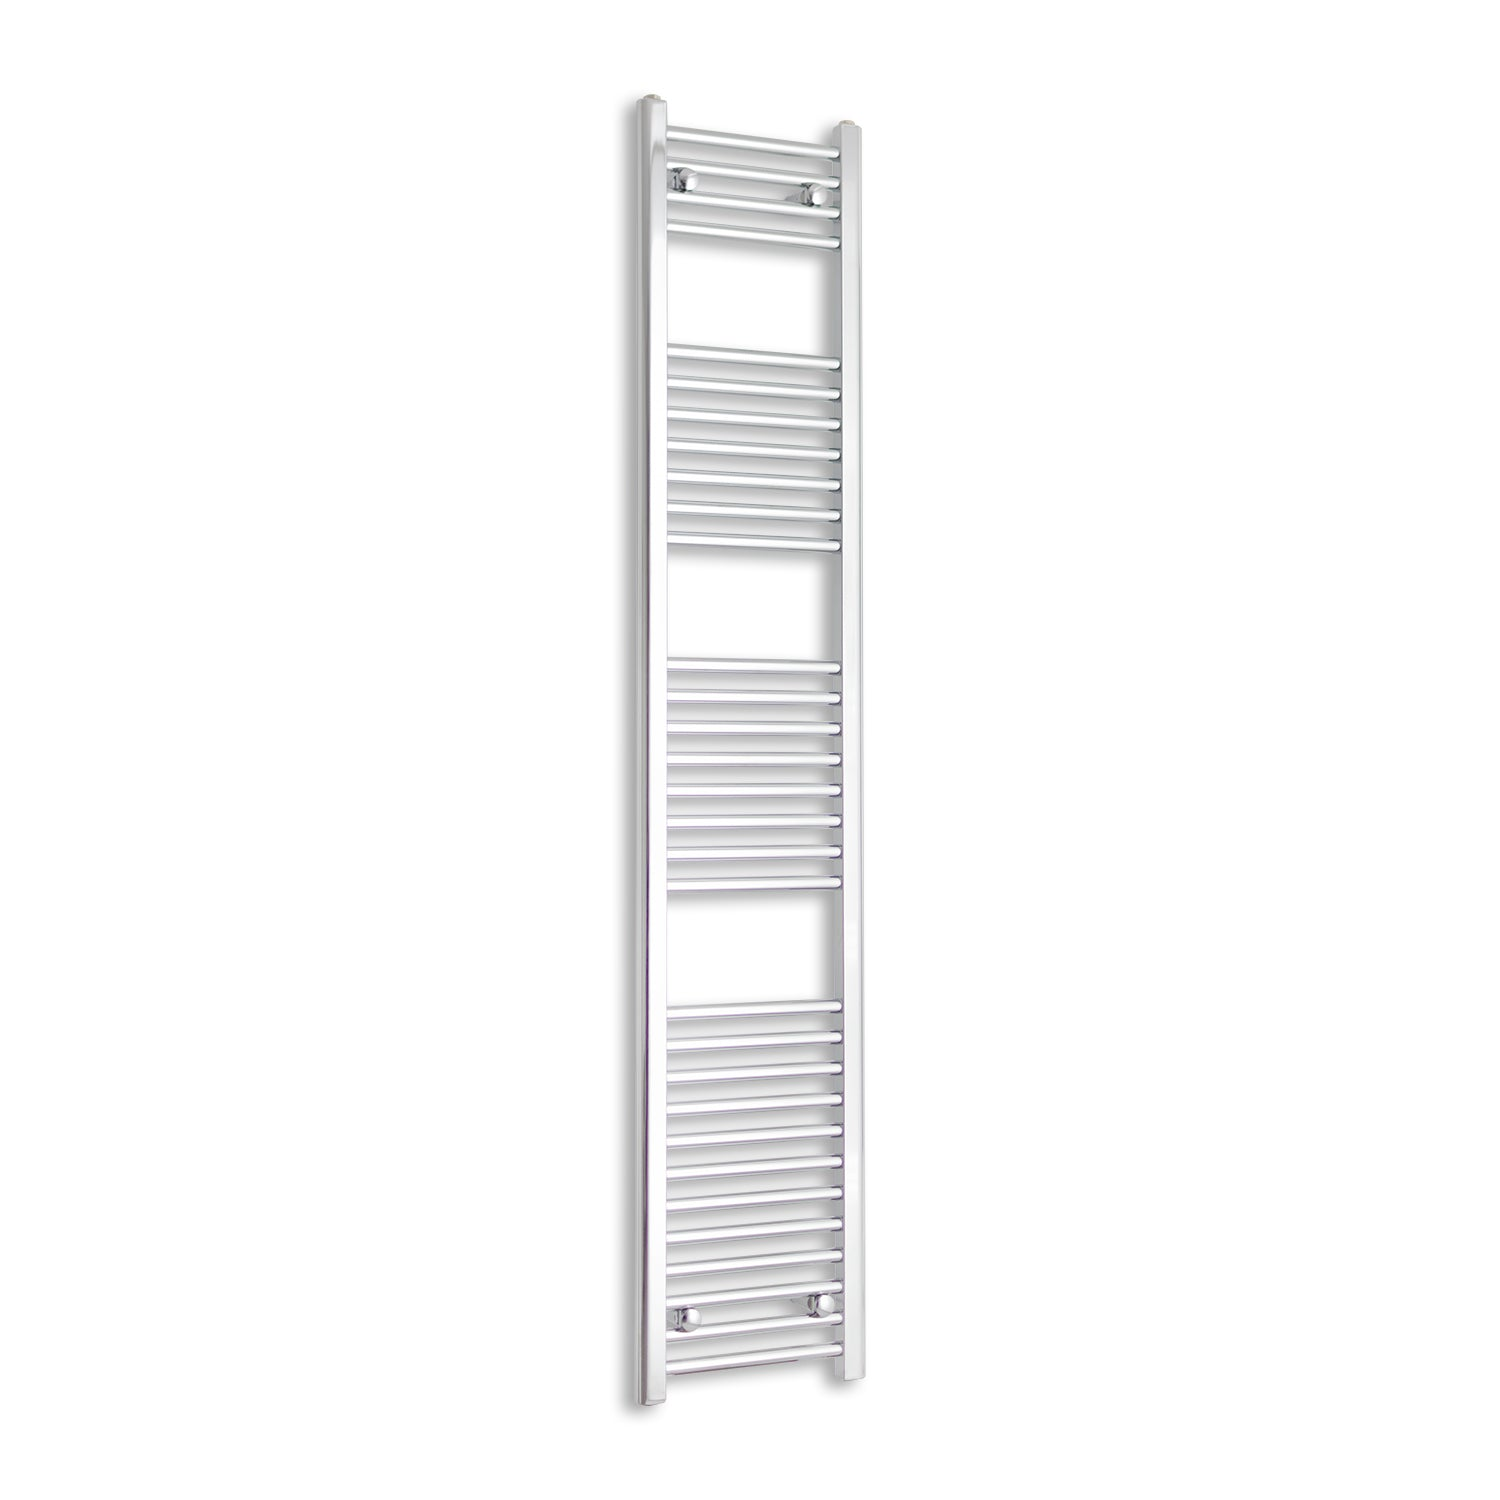 300mm Wide 1800mm High Chrome Towel Rail Radiator